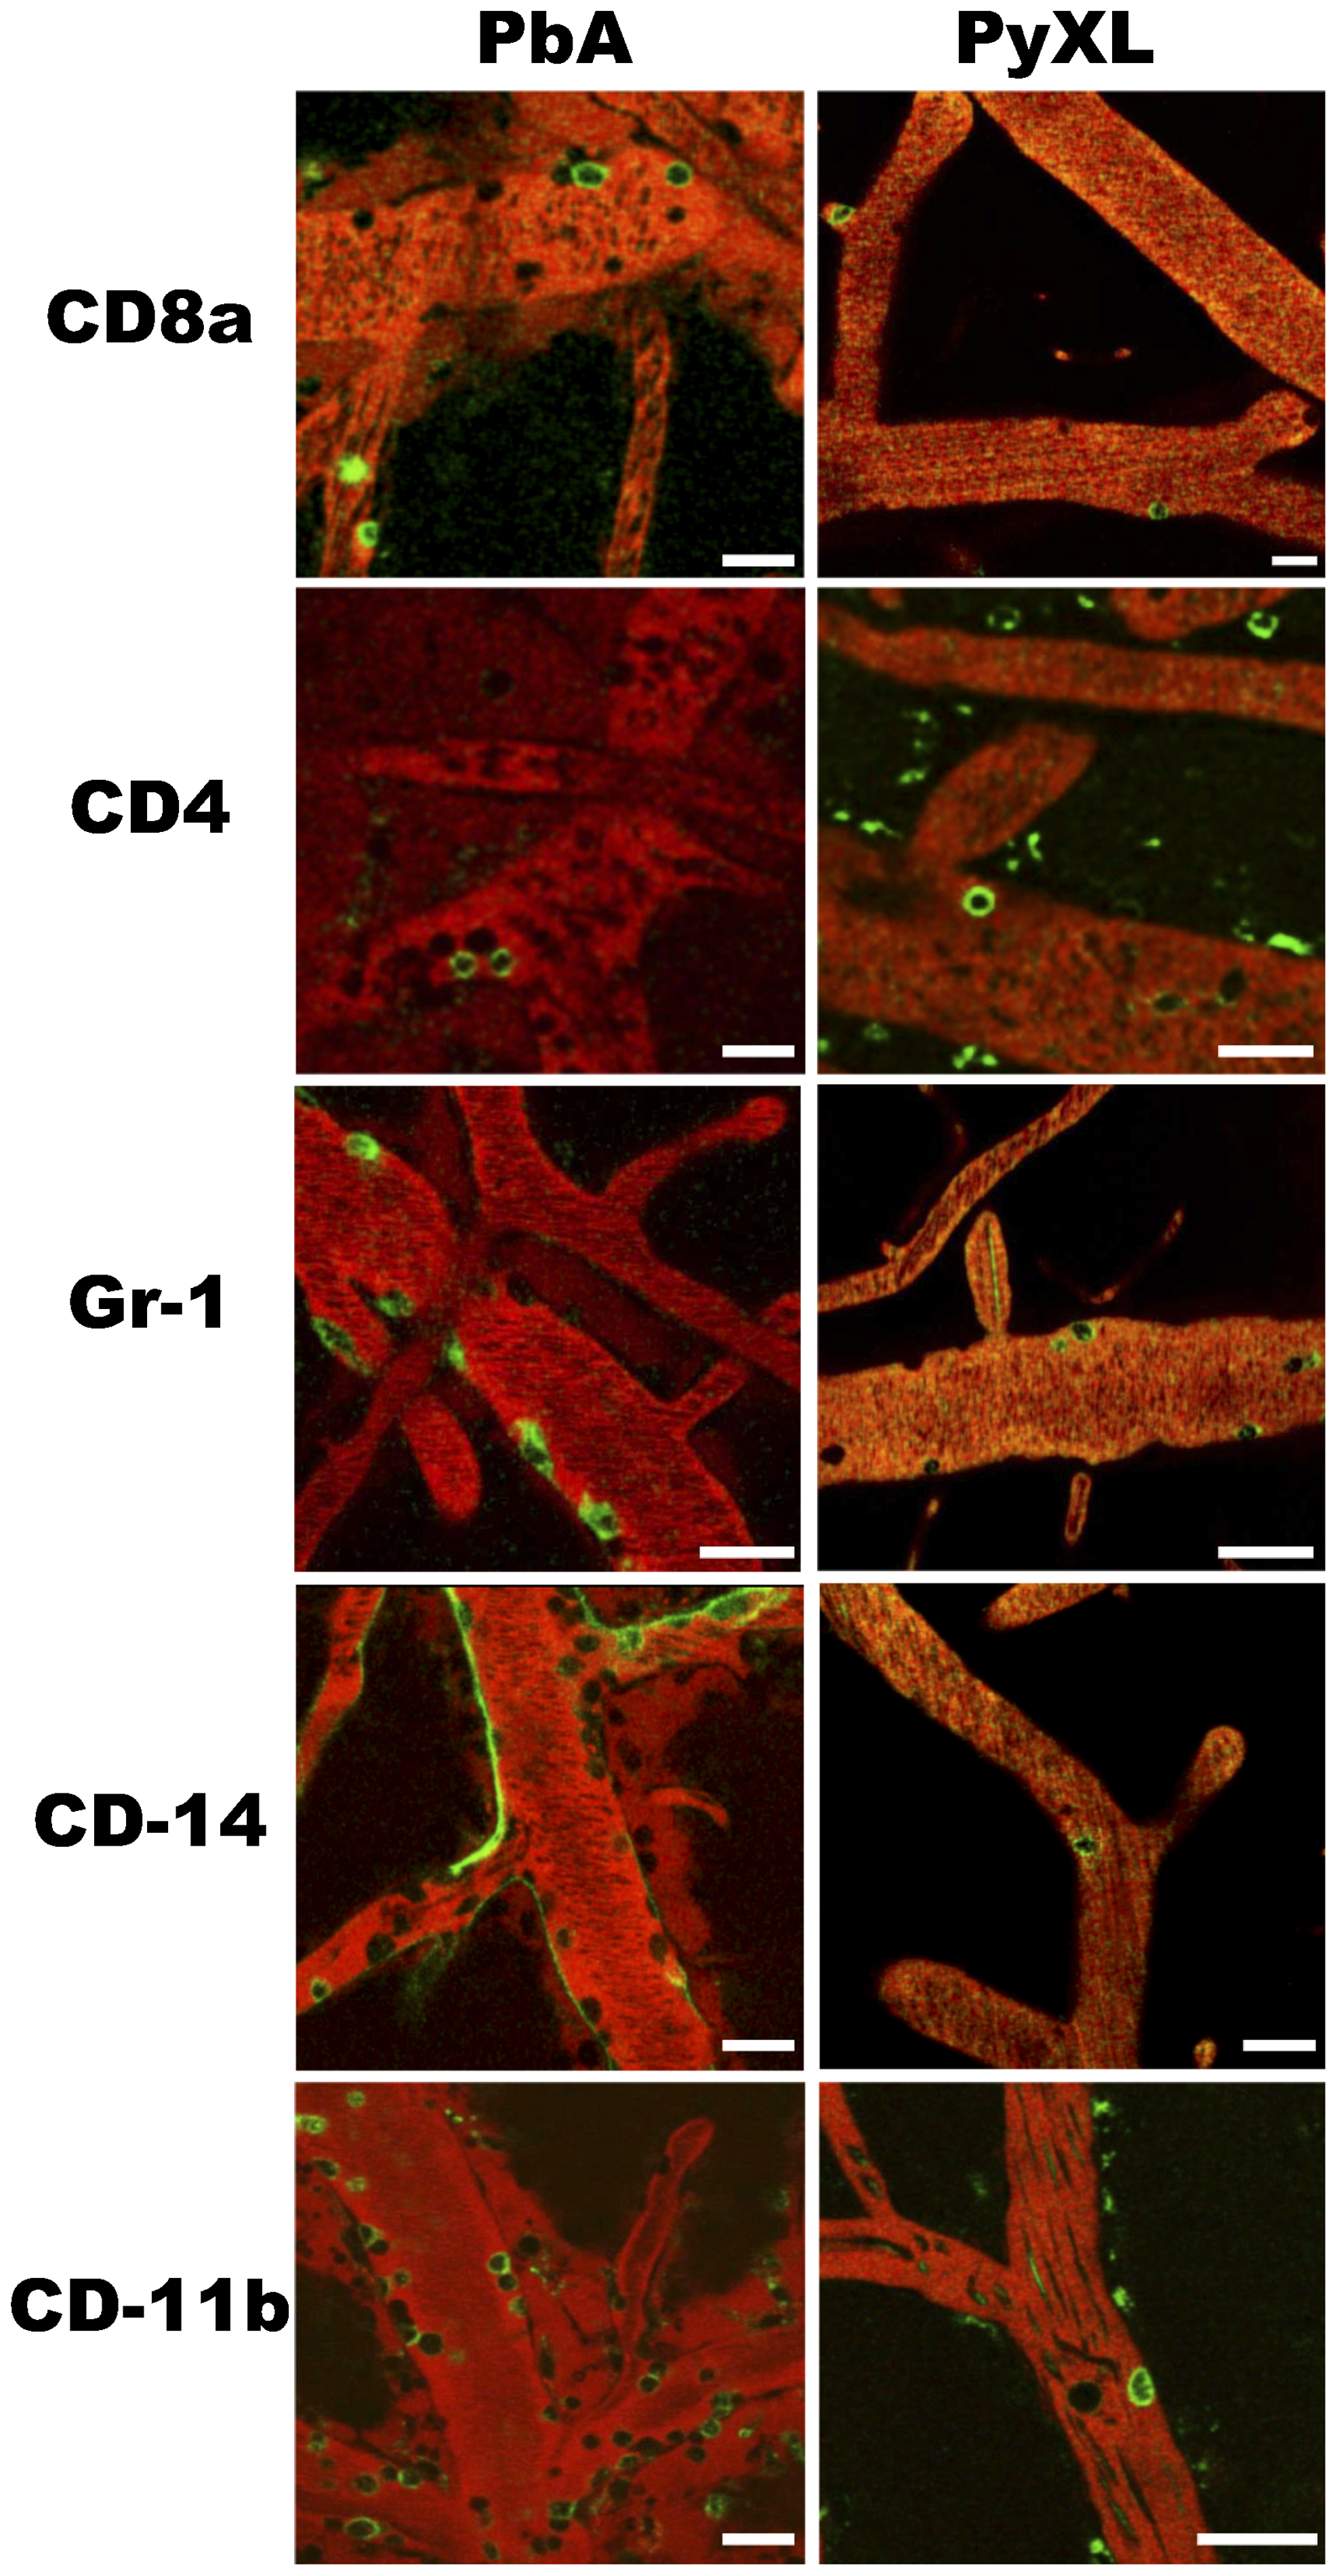 Leukocytes are recruited to cortical postcapillary venules during both ECM and hyperparasitemia.